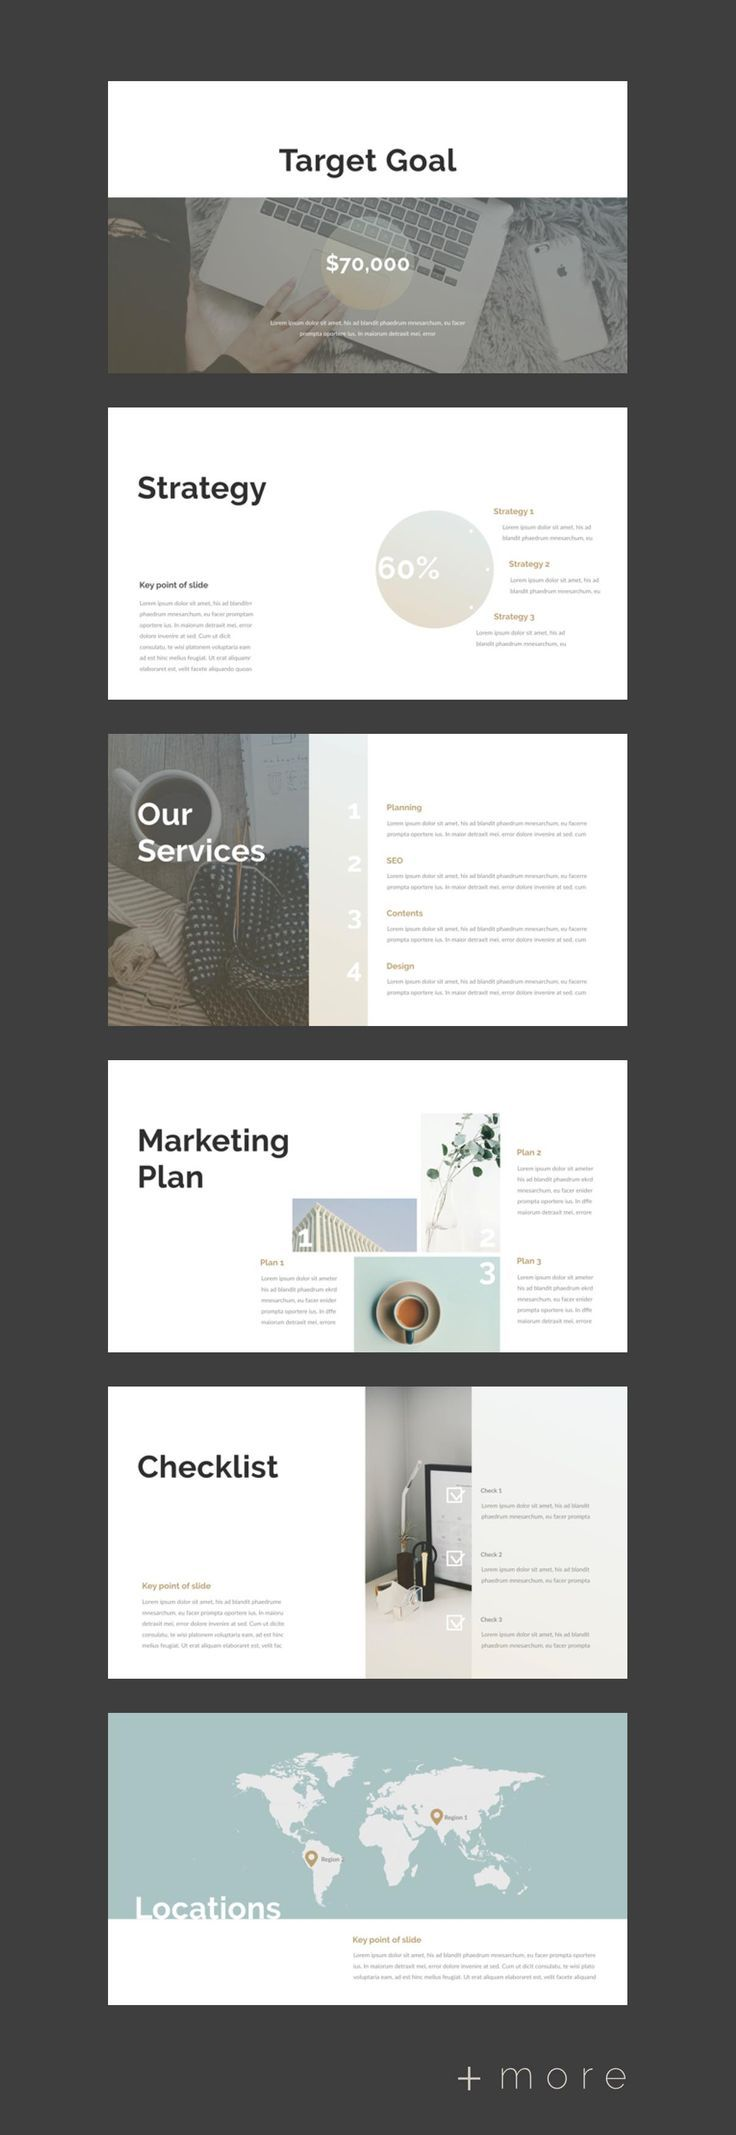 Planner Presentation Template 2018 Business Planning Ppt Power Plant Layout